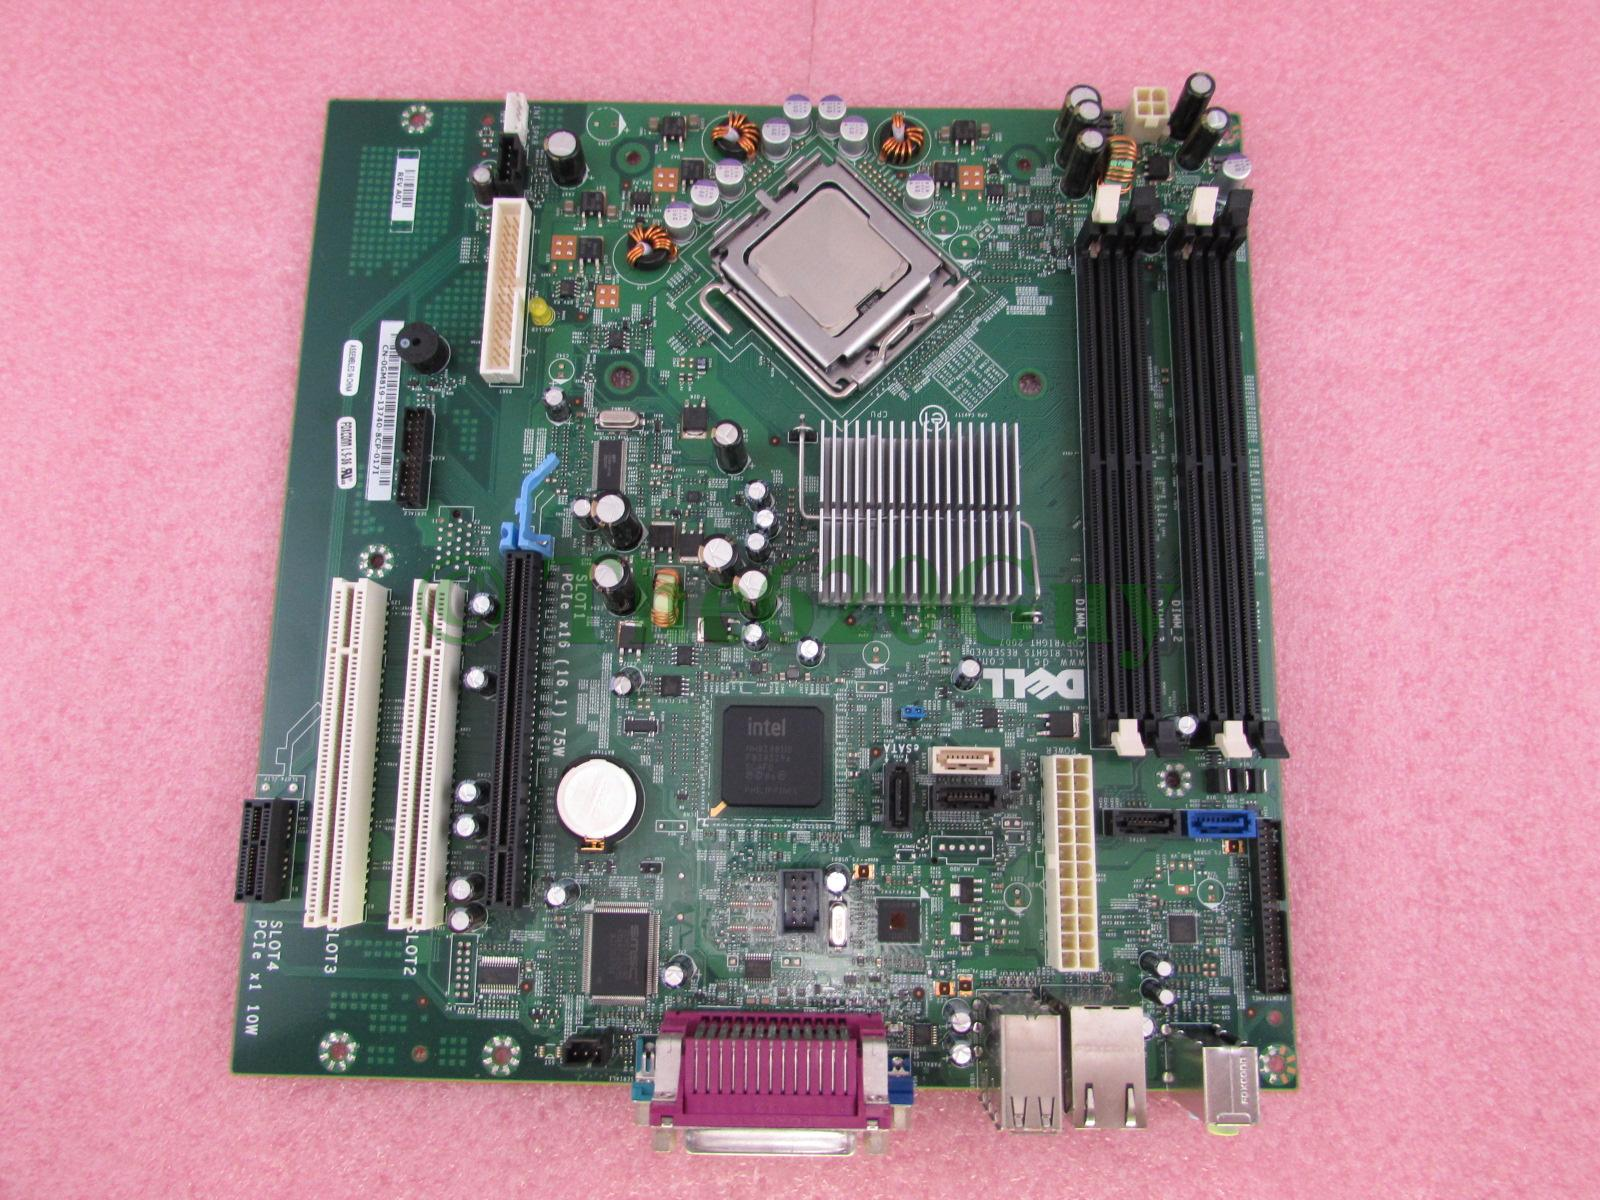 Details about Dell Optiplex 775 MT Motherboard GM819 + Intel Core 2 Duo  E8400 3GHz CPU JR271